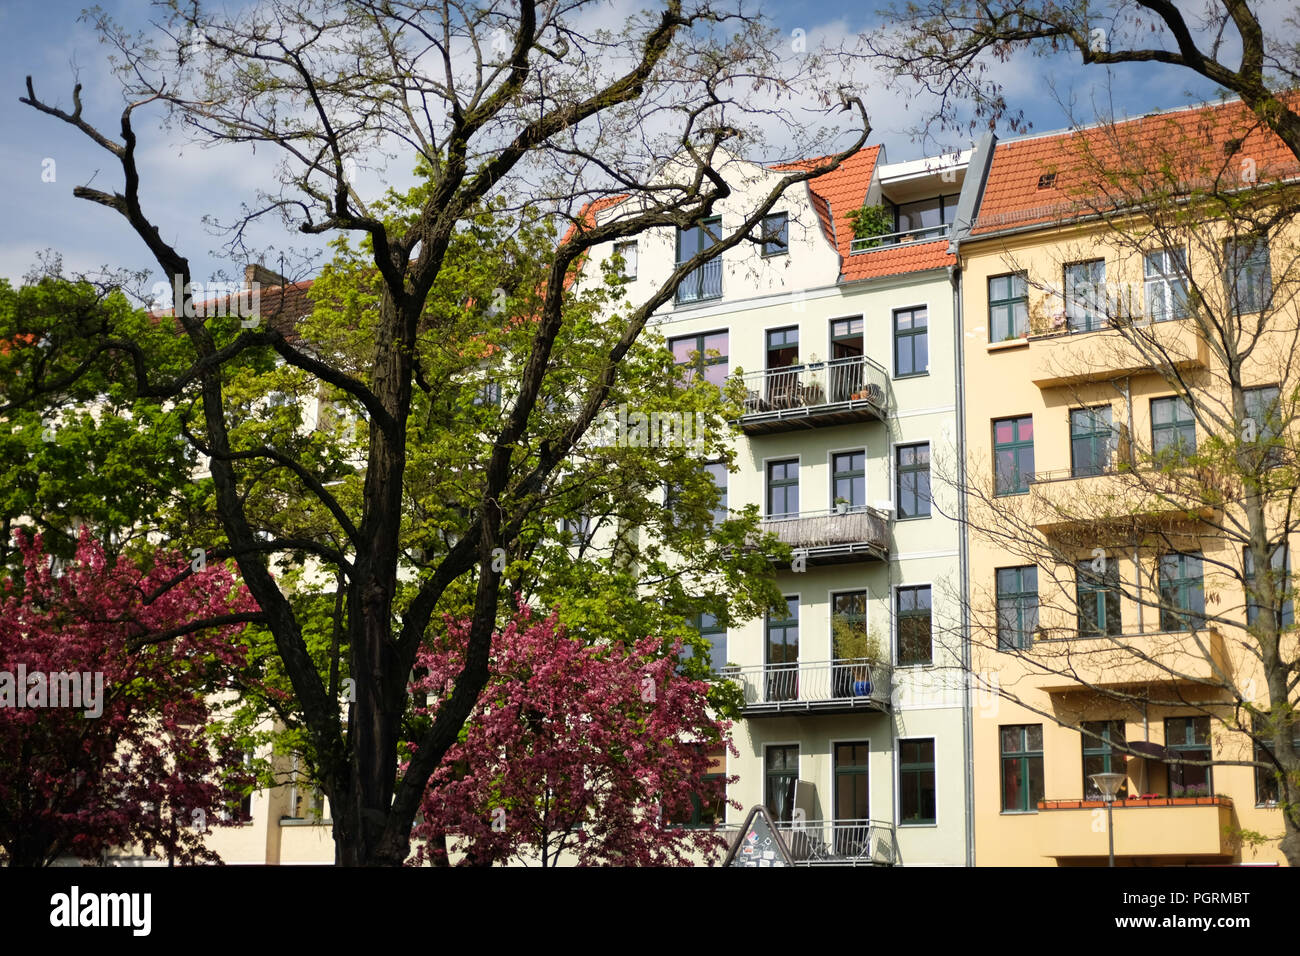 housing property in berlin germany - Stock Image